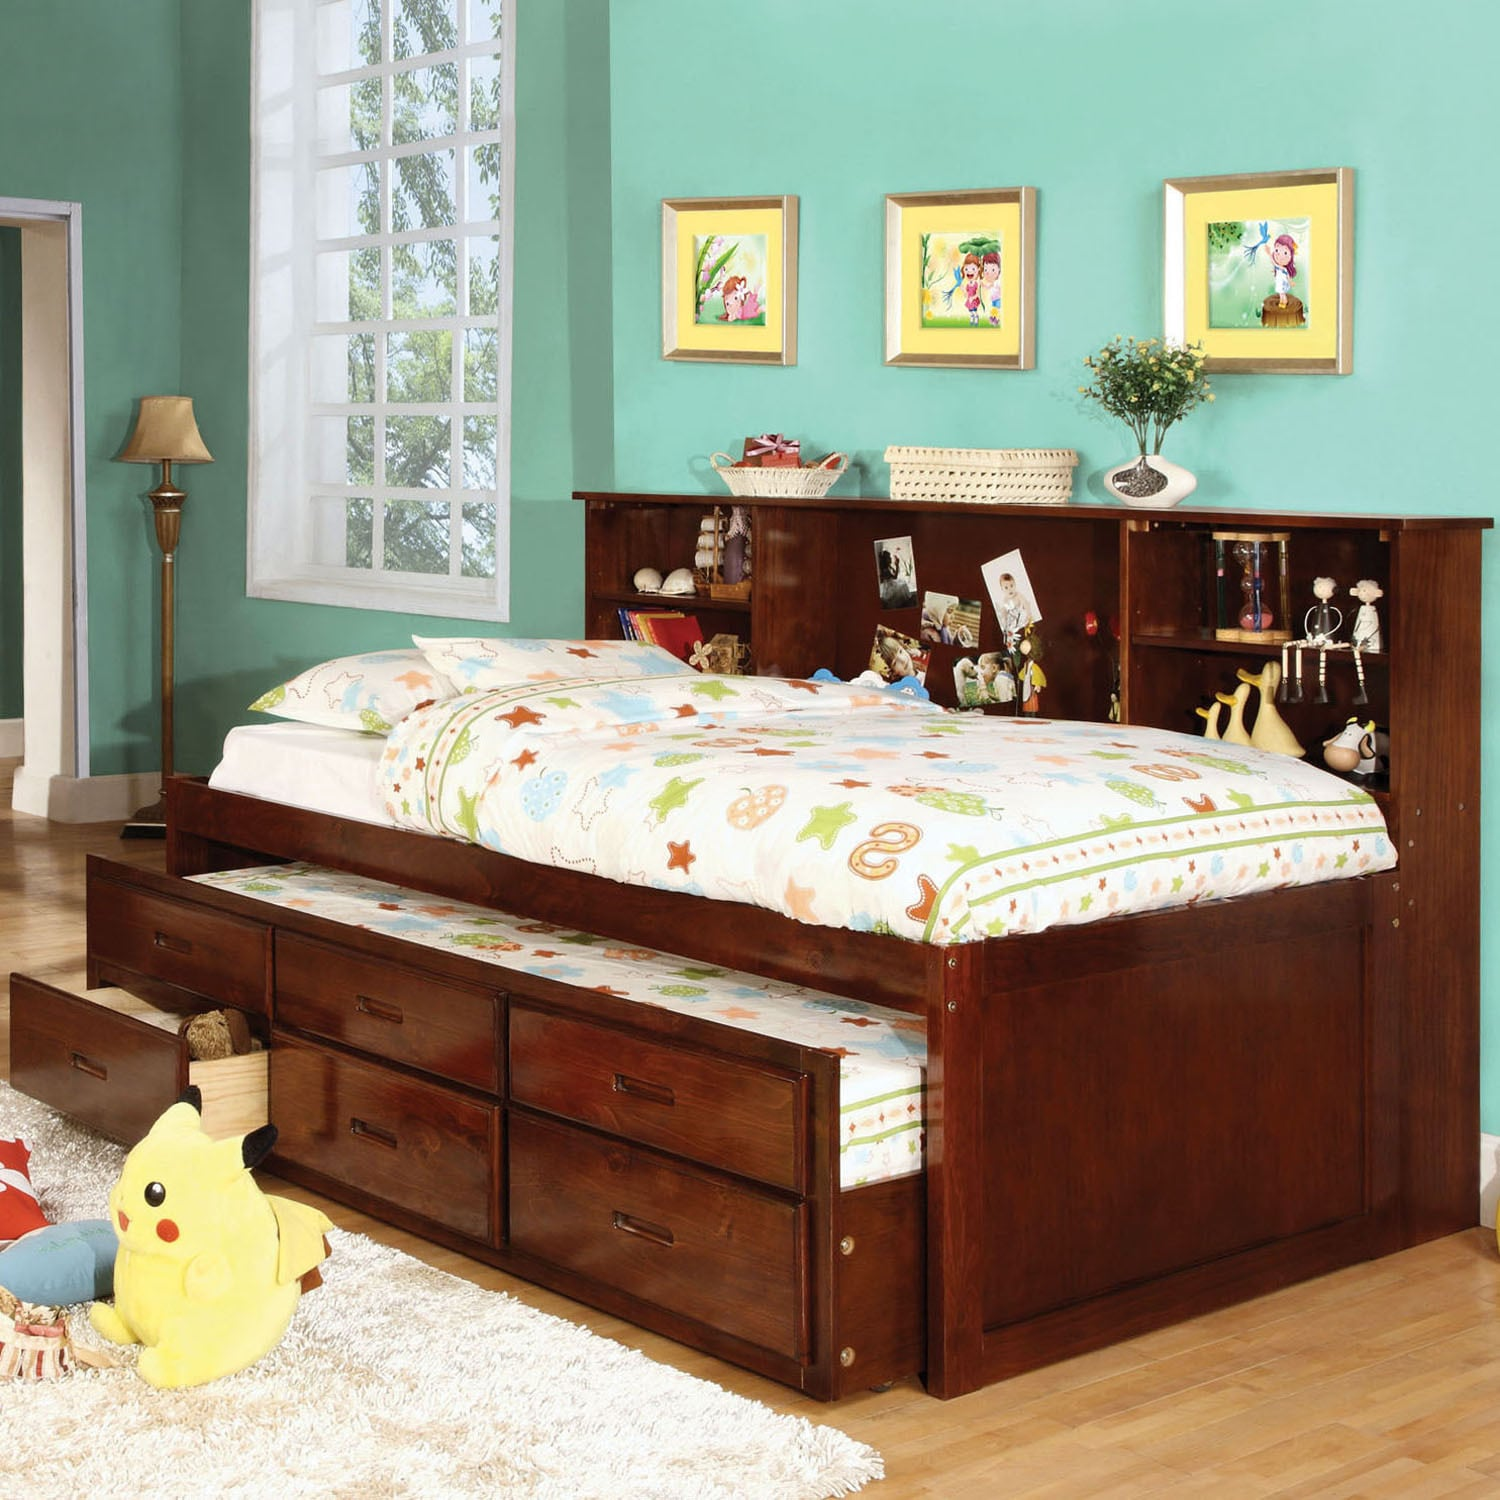 Furniture of America Percius Cherry Captain Bed with Trun...